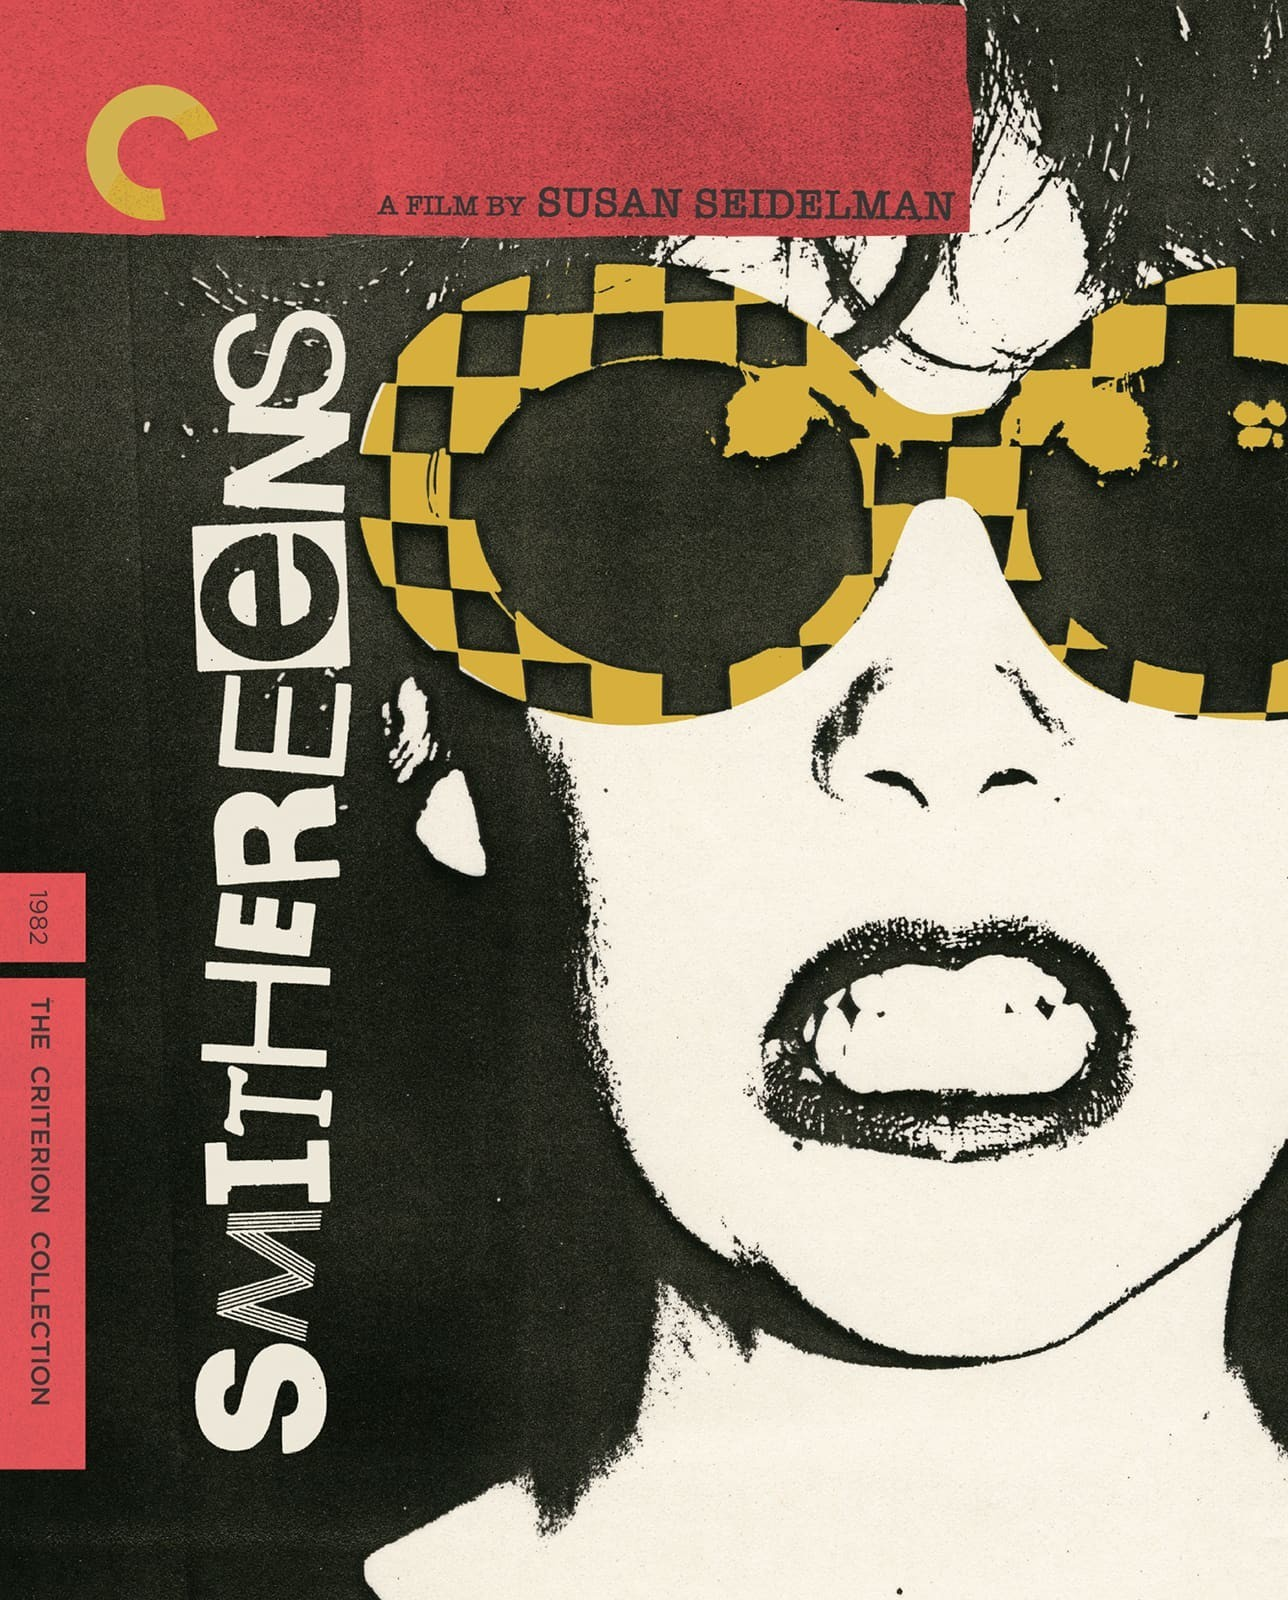 Smithereens (The Criterion Collection)(1982) Blu-ray